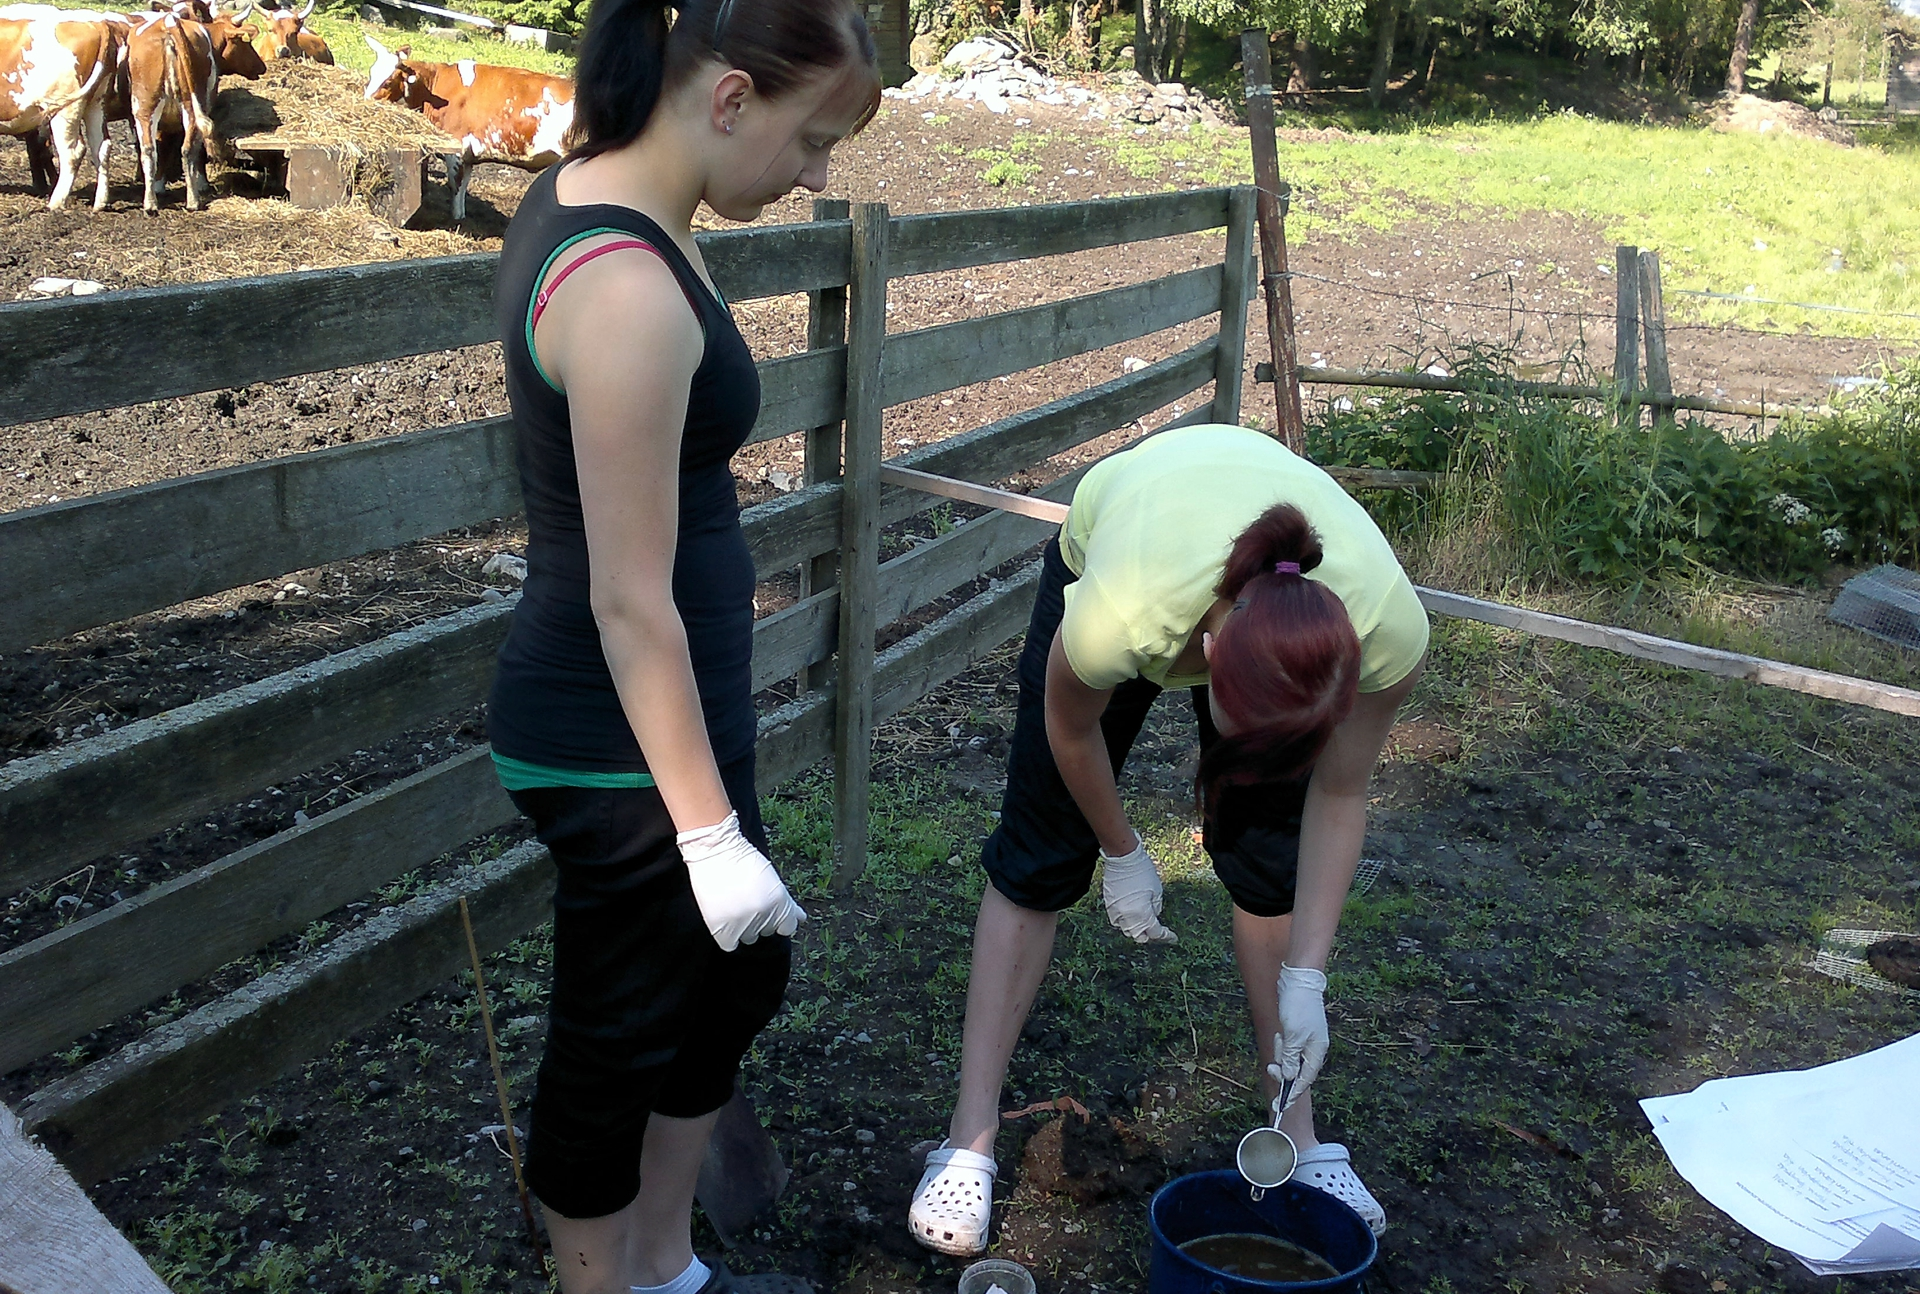 4H kids looking for dung beetles in buckets. By Anna-Kaisa Valaja